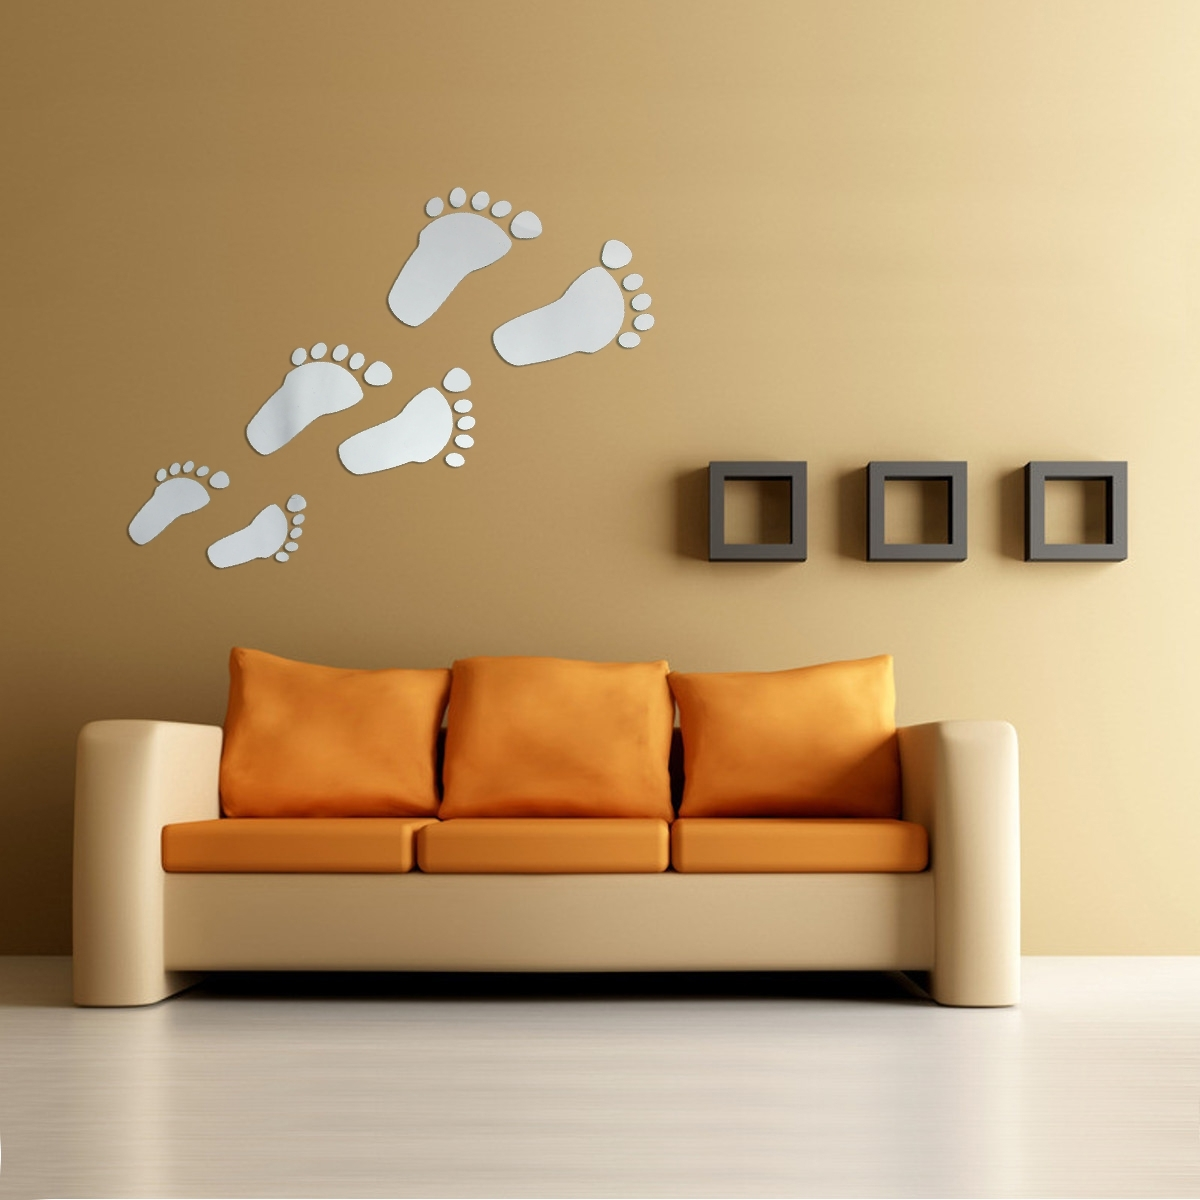 Famous Acrylic Wall Art Intended For 6Pcs Diy Footprint Acrylic Wall Sticker Fat Footprints Mirror Wall (View 10 of 20)